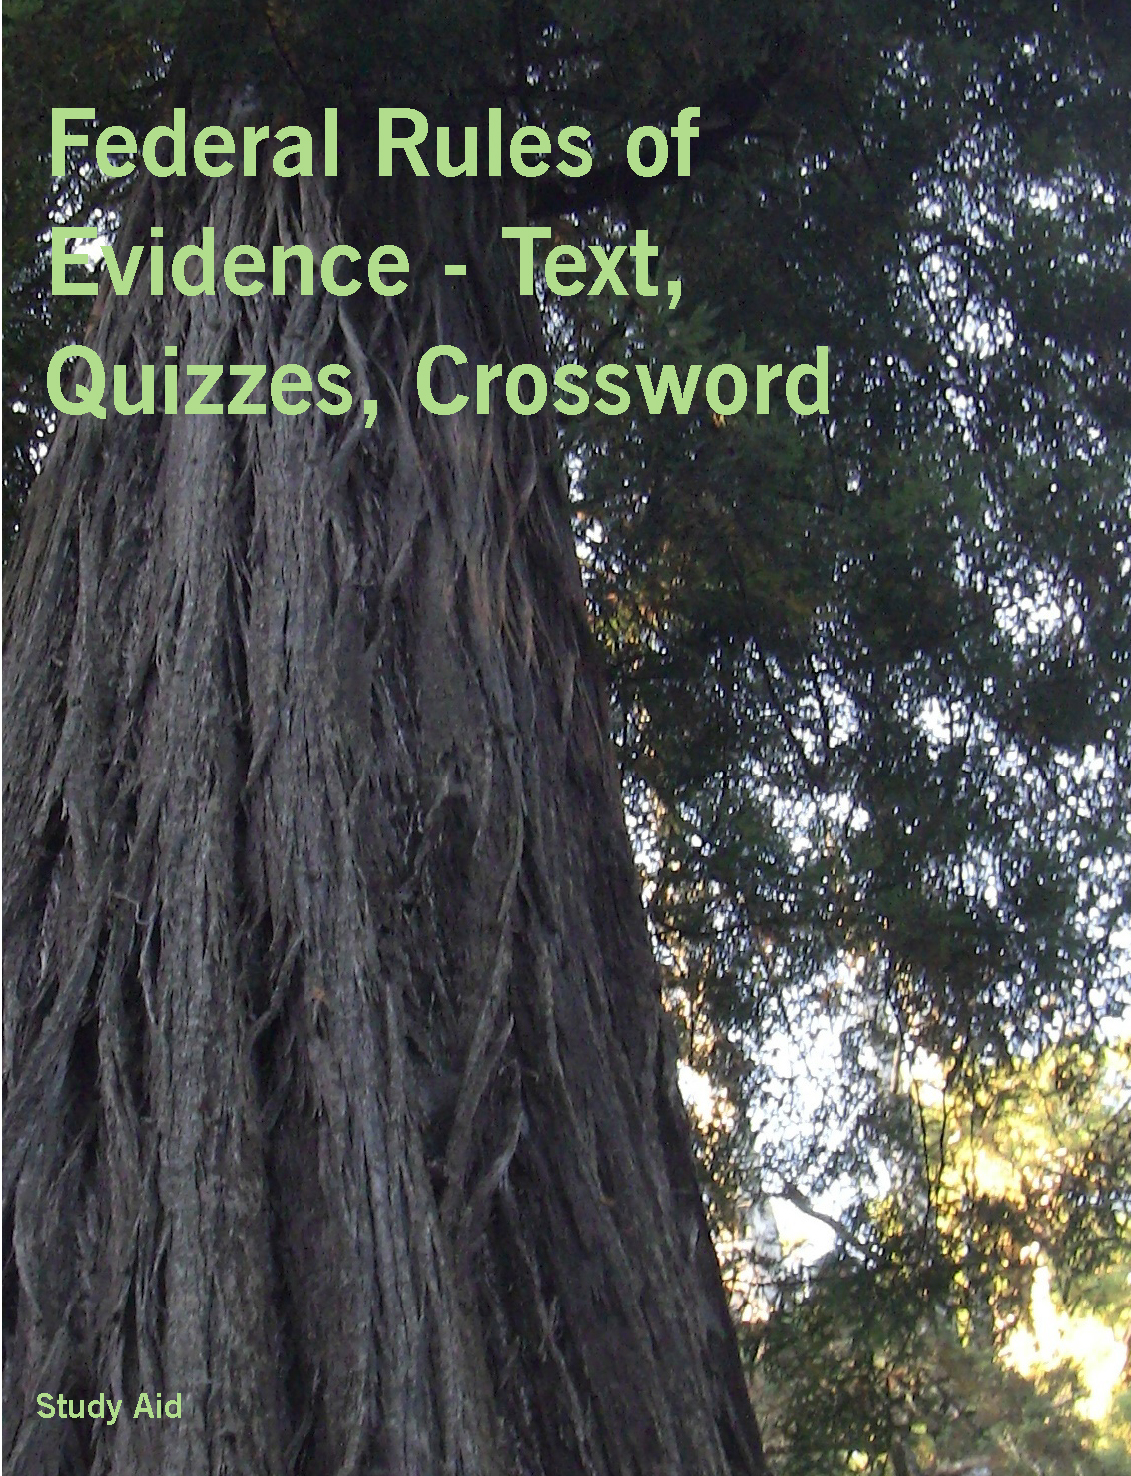 Federal Rules of Evidence-Quiz-Final-Edition-01-14-2014_Page_01.jpg